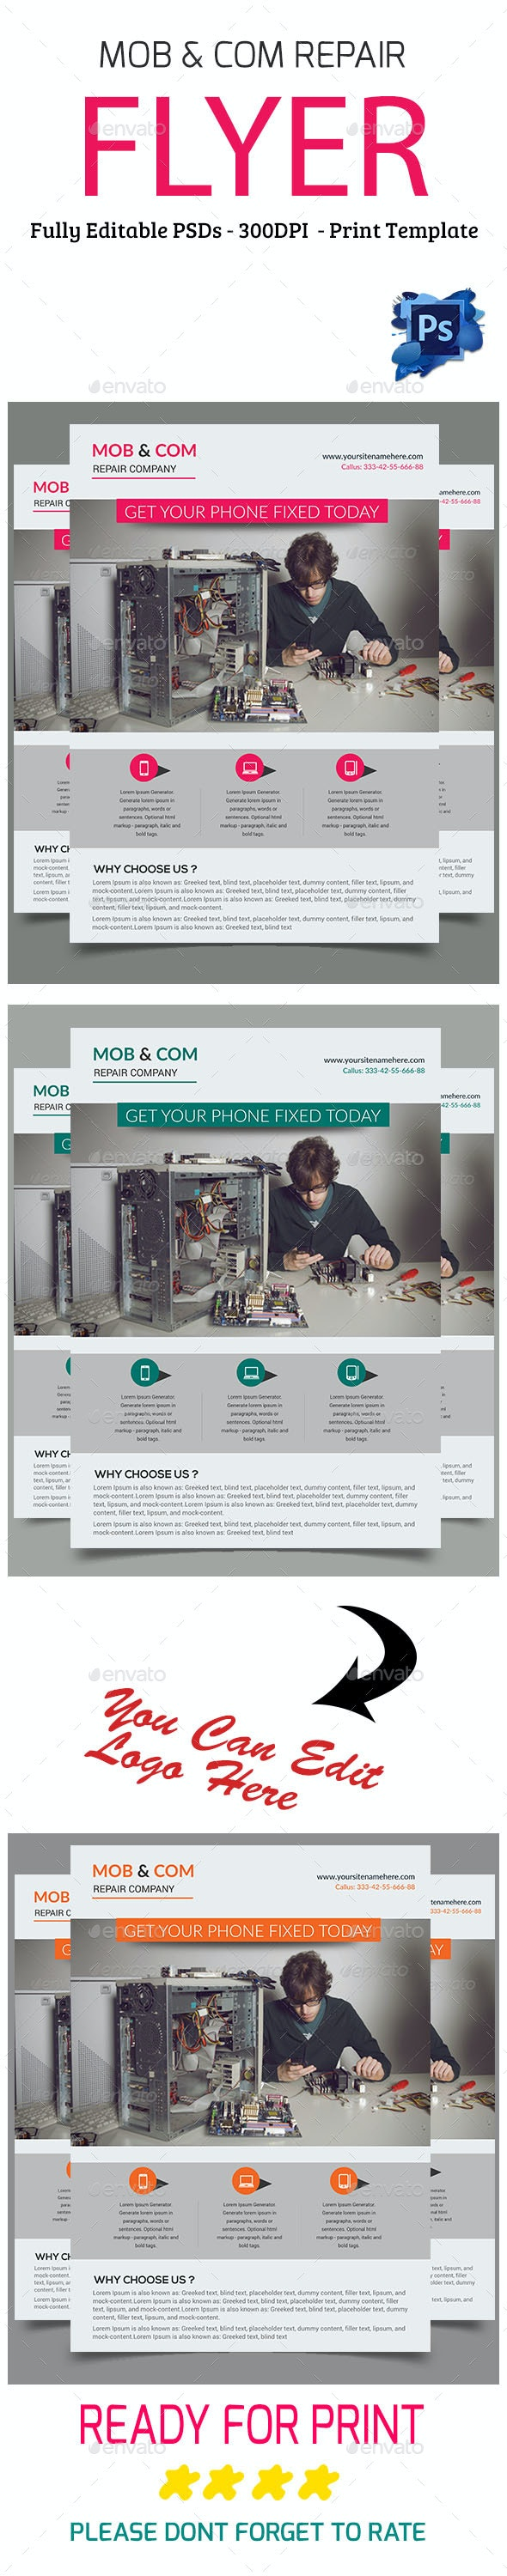 Mobile & Computer Repair Flyer - Flyers Print Templates